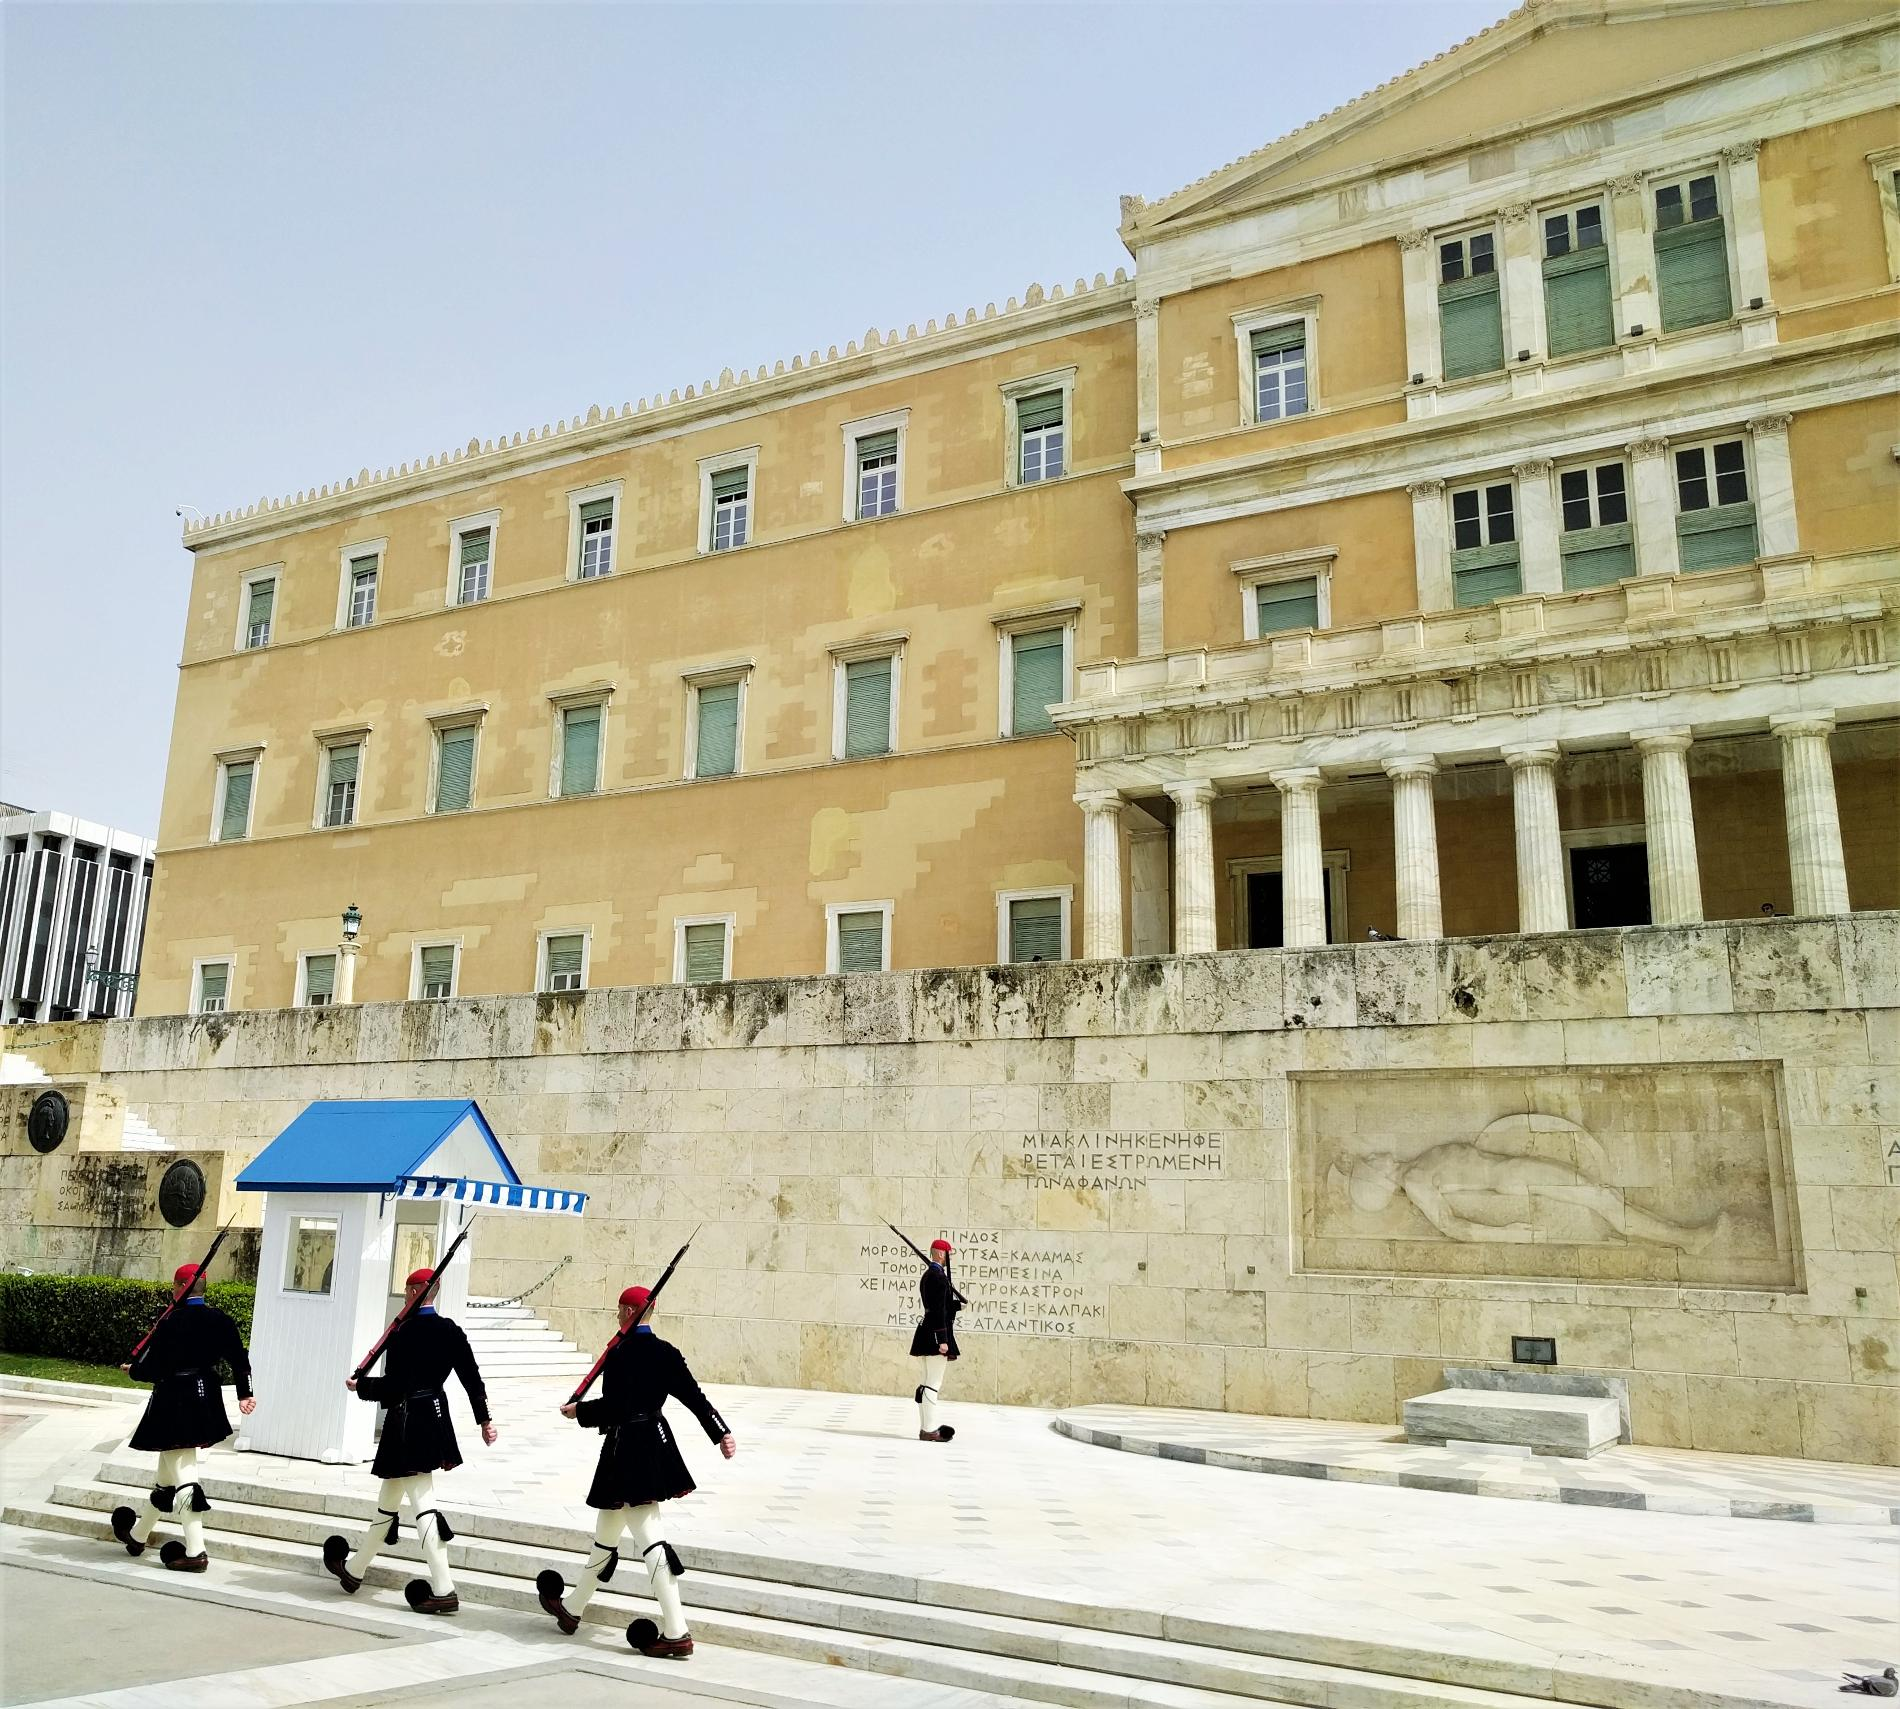 The Hellenic Parliament in Athens is the supreme democratic institution in Greece. Source: Truevoyagers